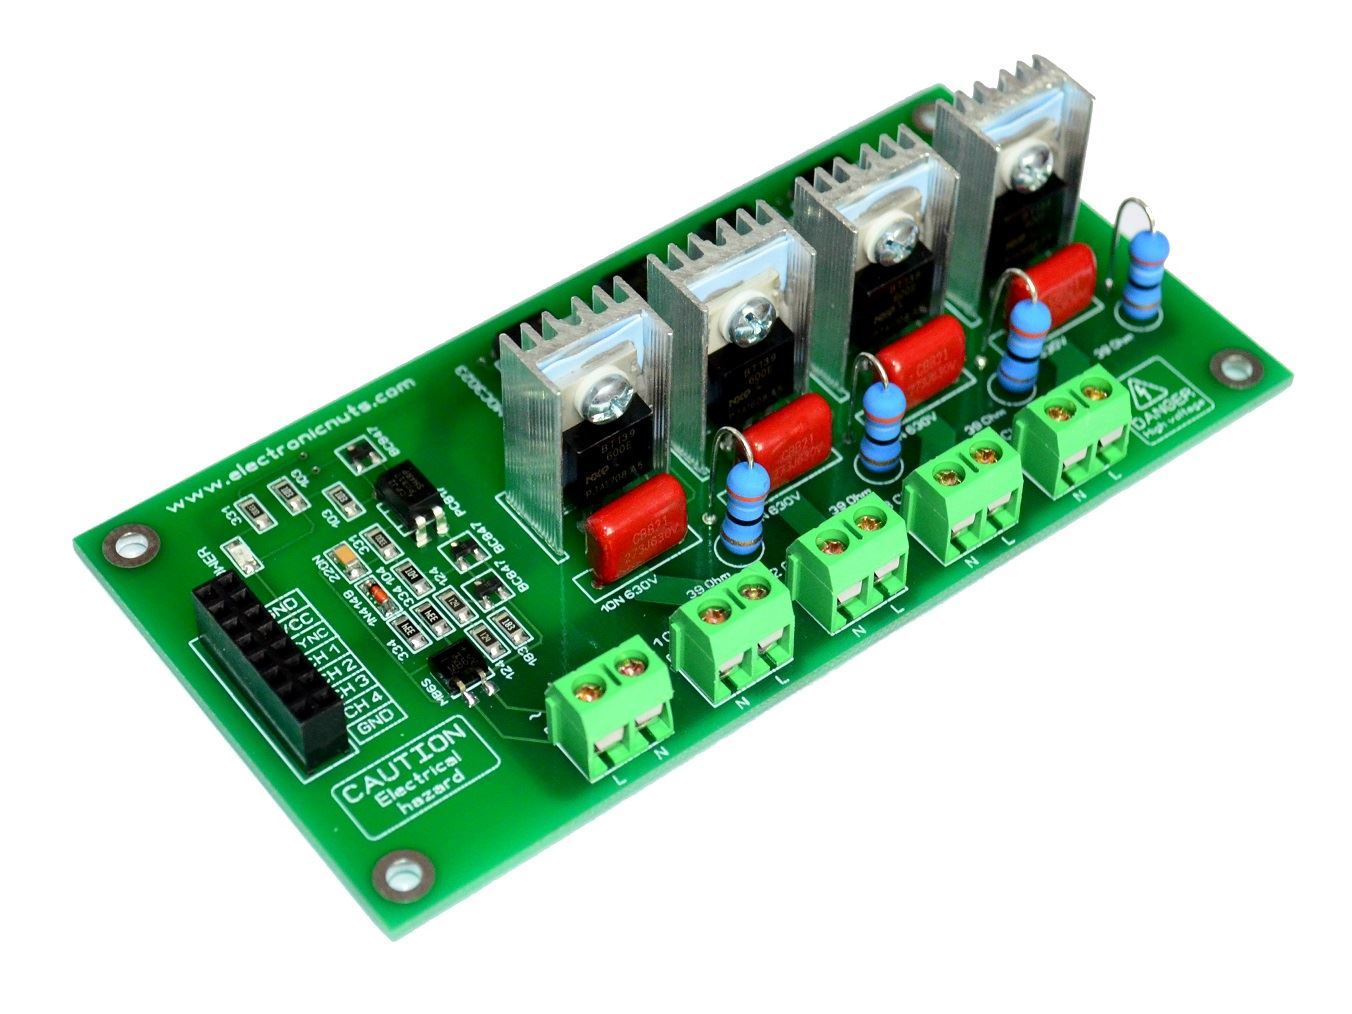 4ch Ac Dimmer Arduino Rasberry Pi Light 80v 240v Shop Now Microphone Circuit Picture Of 4 Channel Programmable Ssr Module Controller Board Raspberry Mic Compatible